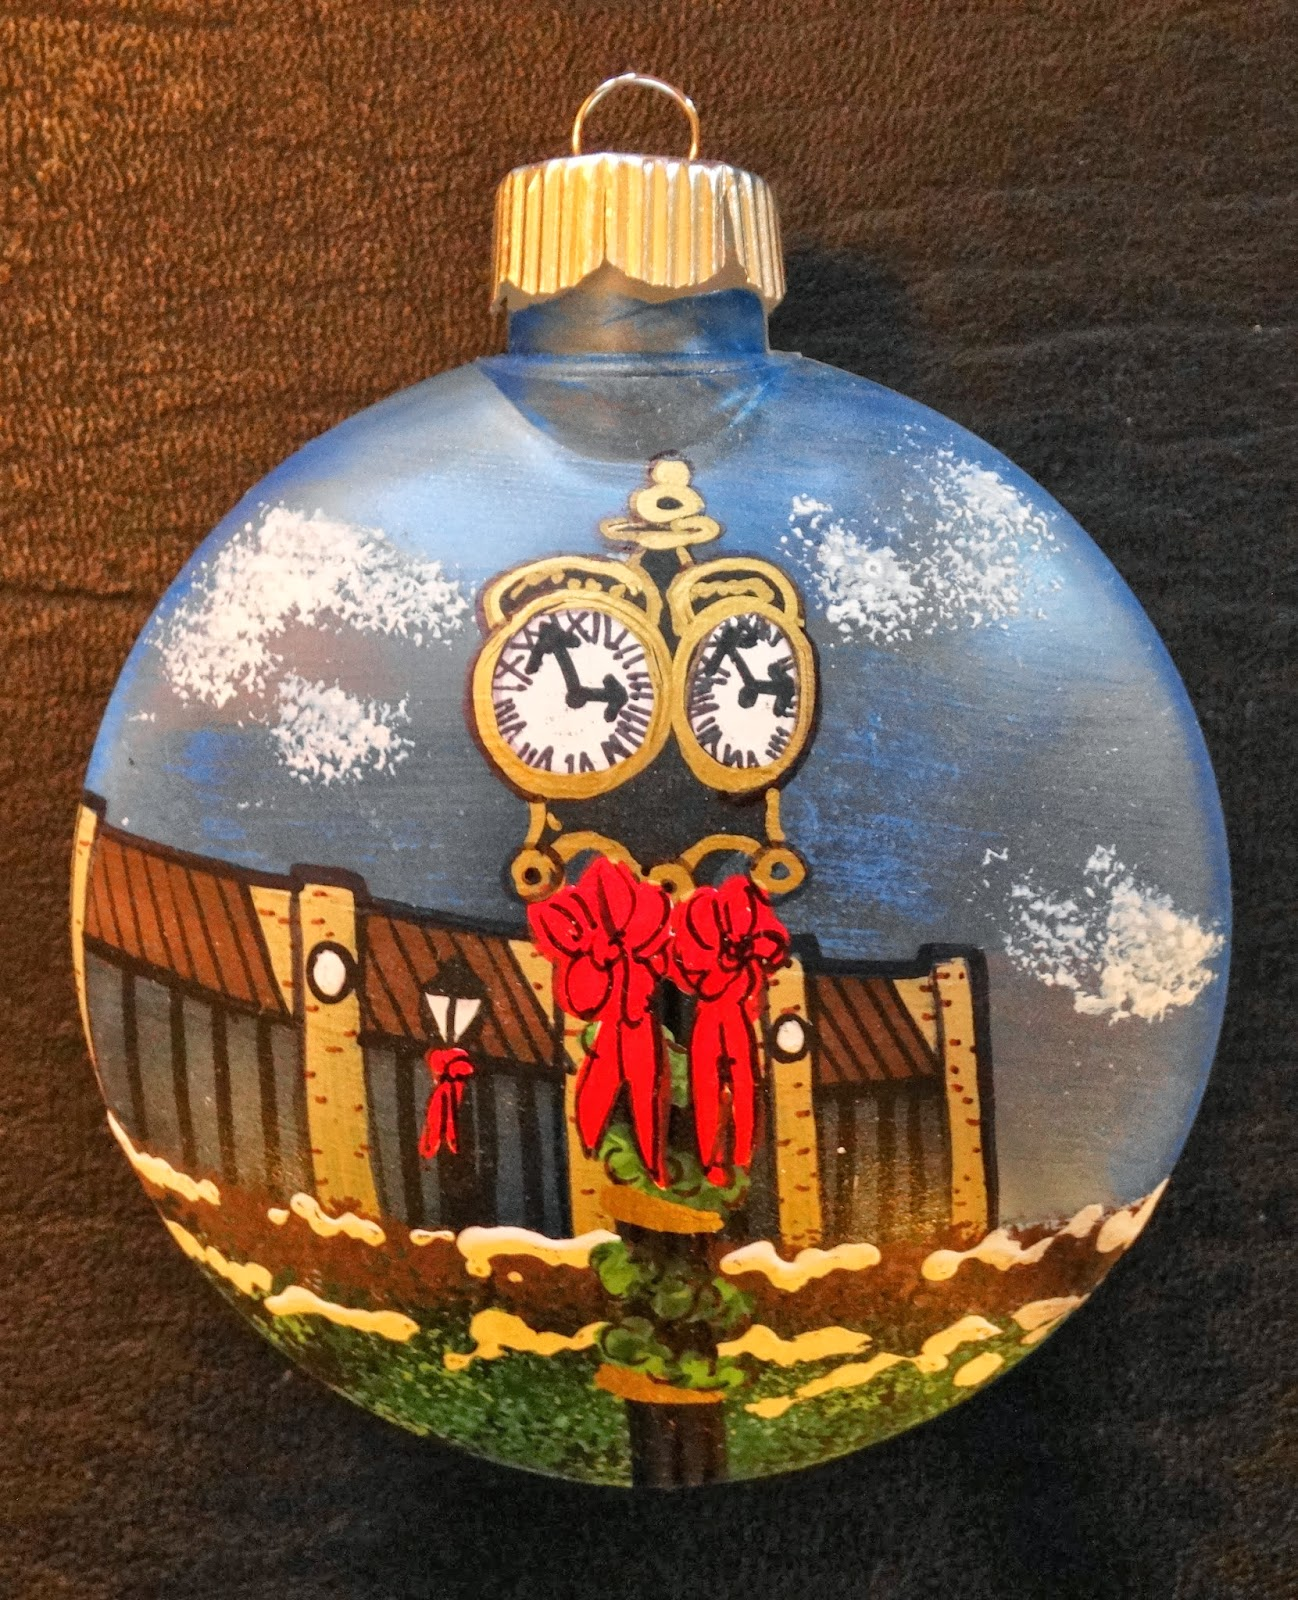 unique christmas ornaments for sale to support college fund